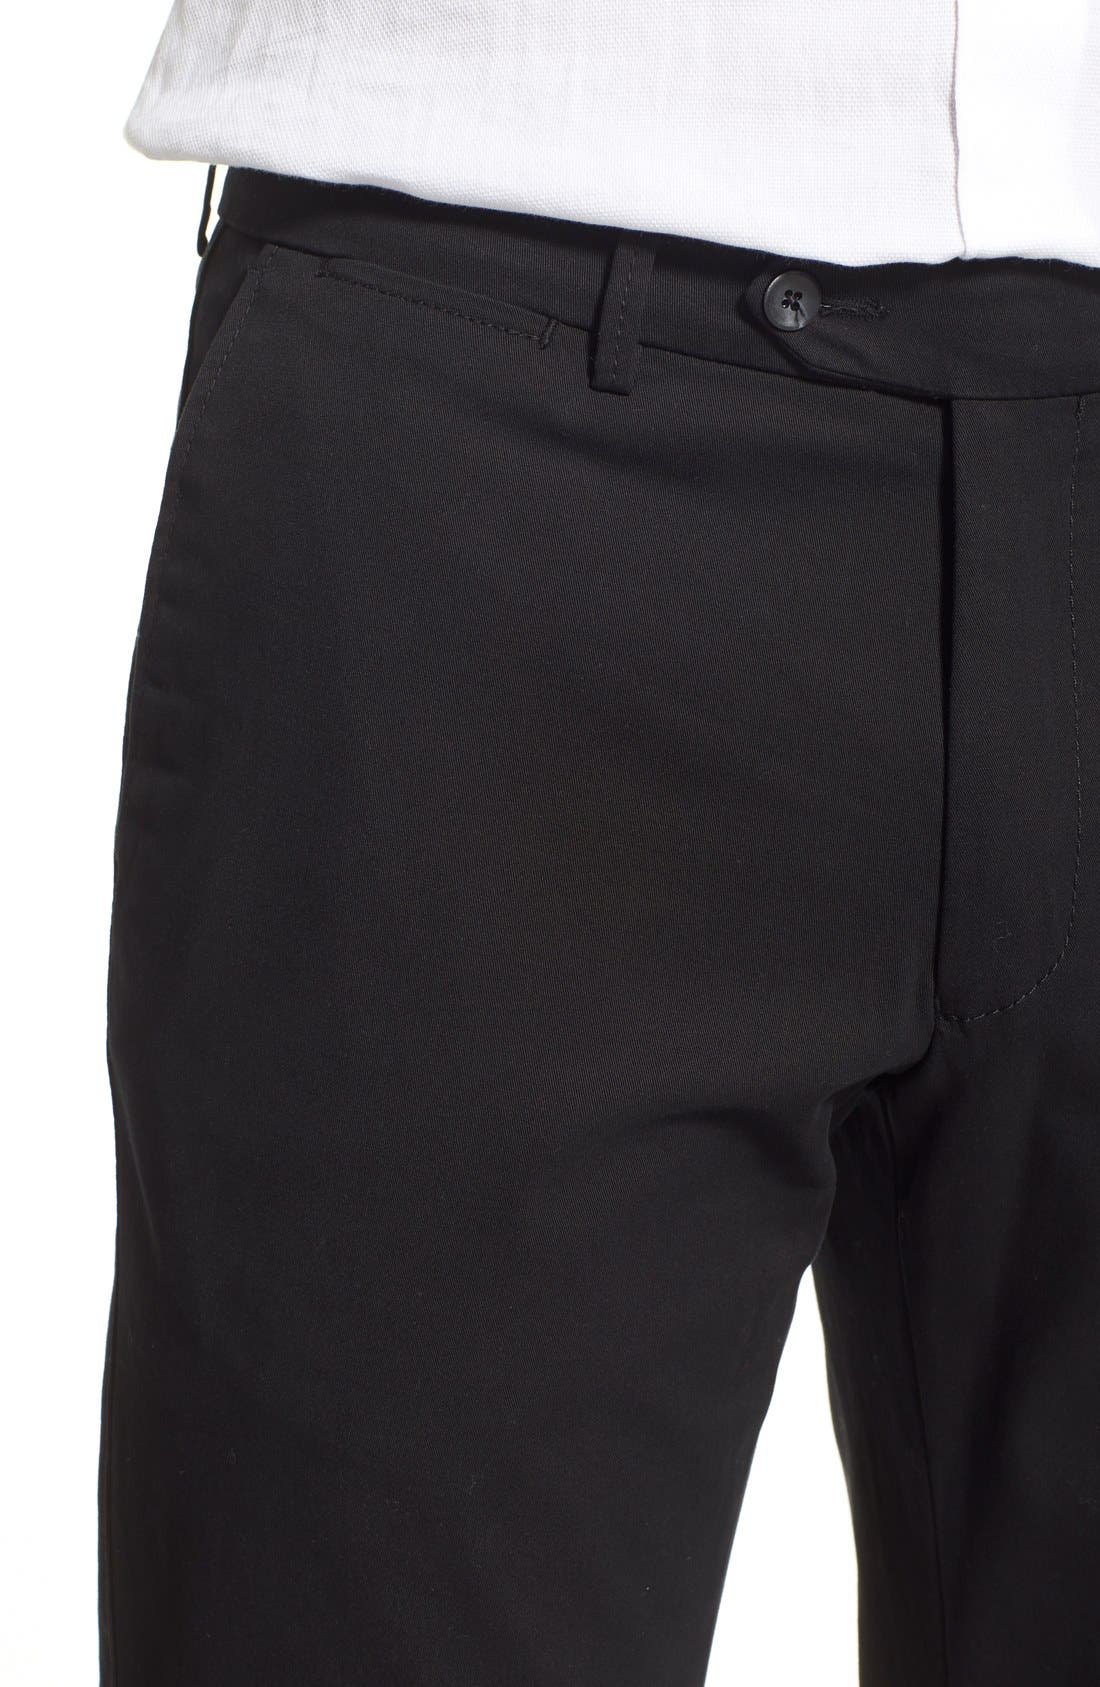 Atwater Cotton Twill Pants,                             Alternate thumbnail 4, color,                             001